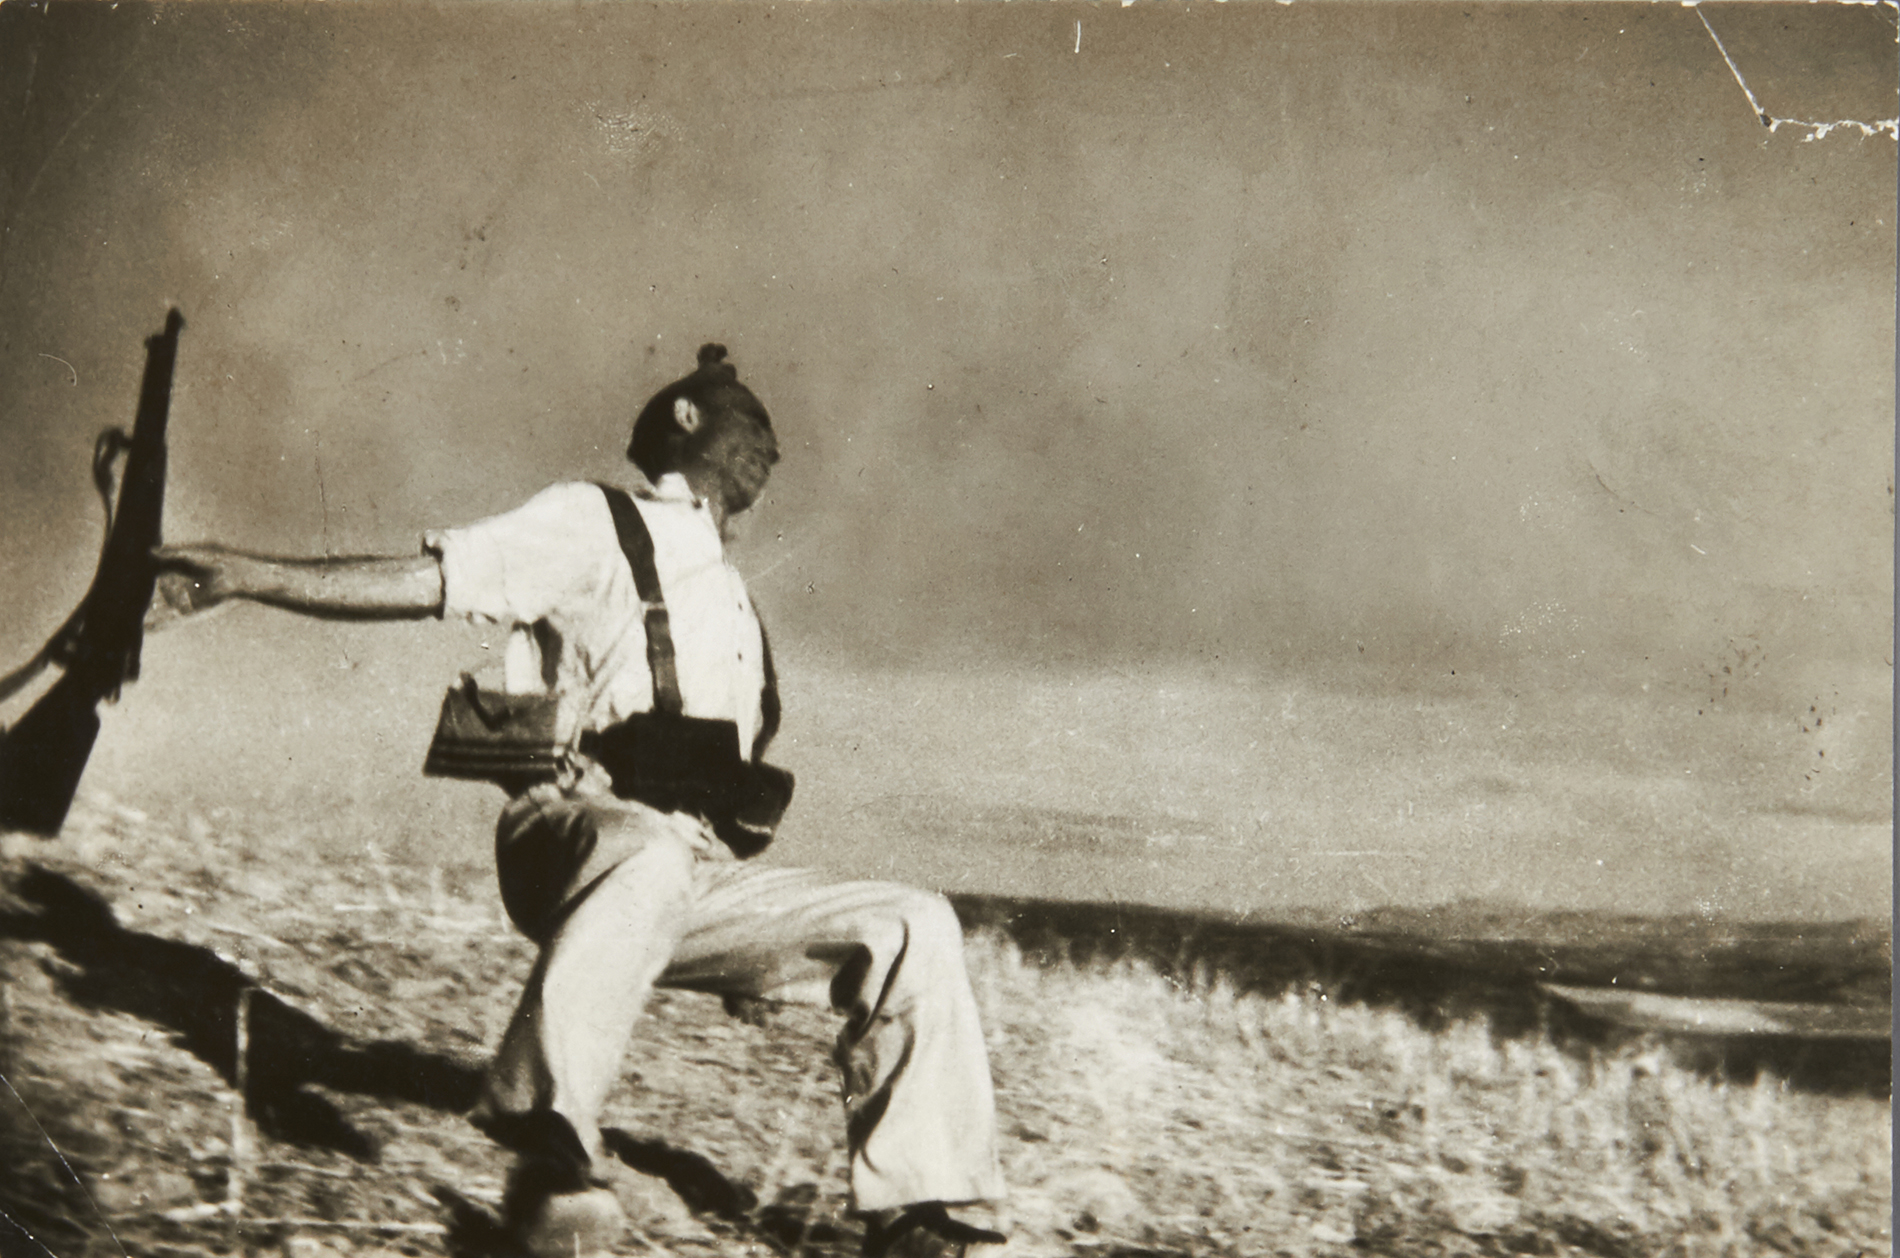 ROBERT CAPA (1913–1954) 'The Falling Soldier' (Loyalist Militiaman at the Moment of Death), Córdoba front, September 5th, 1936 Starting price: € 60.000 / estimate: € 100.000–120.000